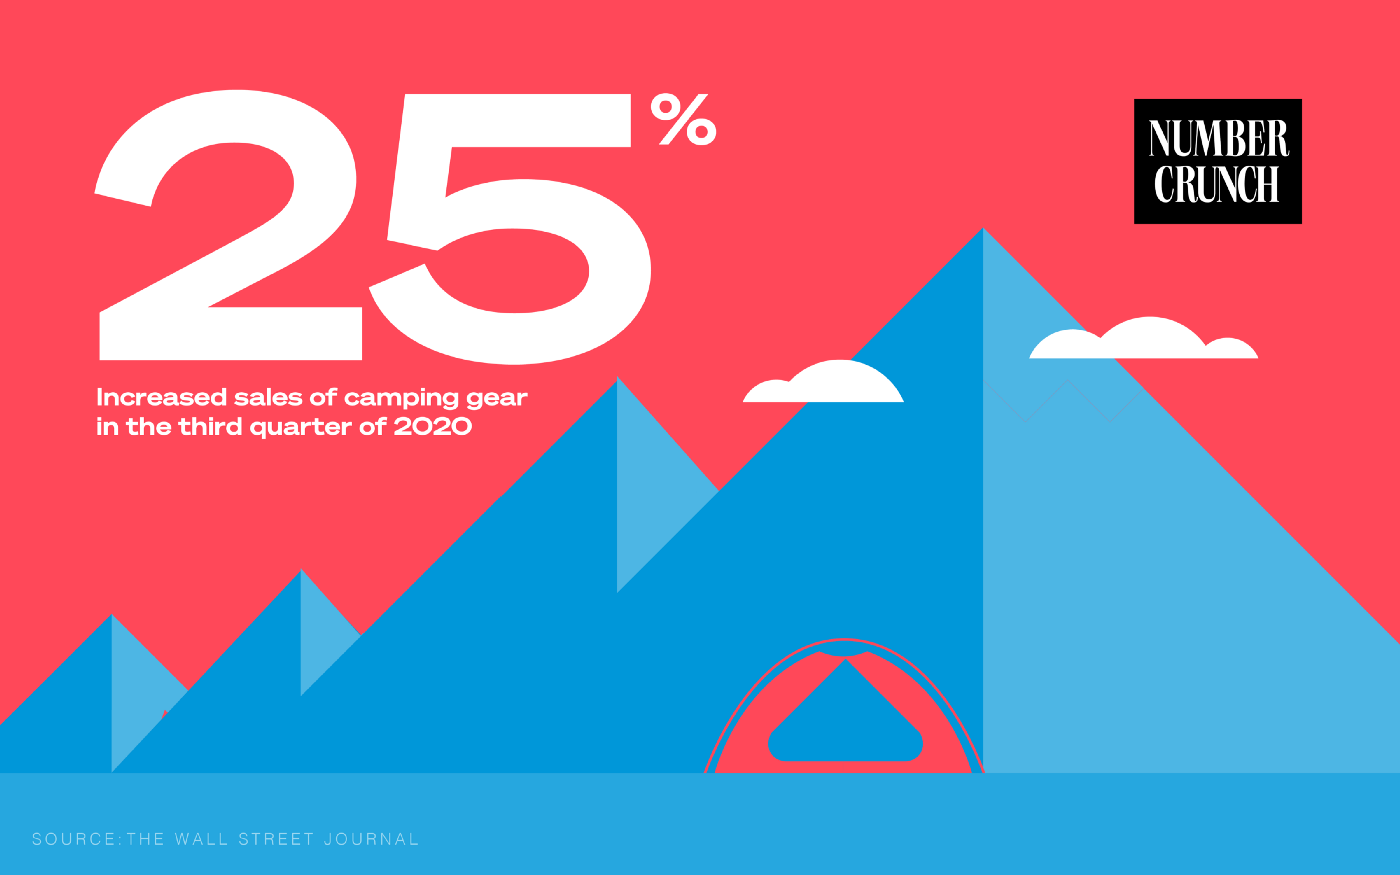 25%: Increased sales of camping gear in the third quarter of 2020 Source: The Wall Street Journal